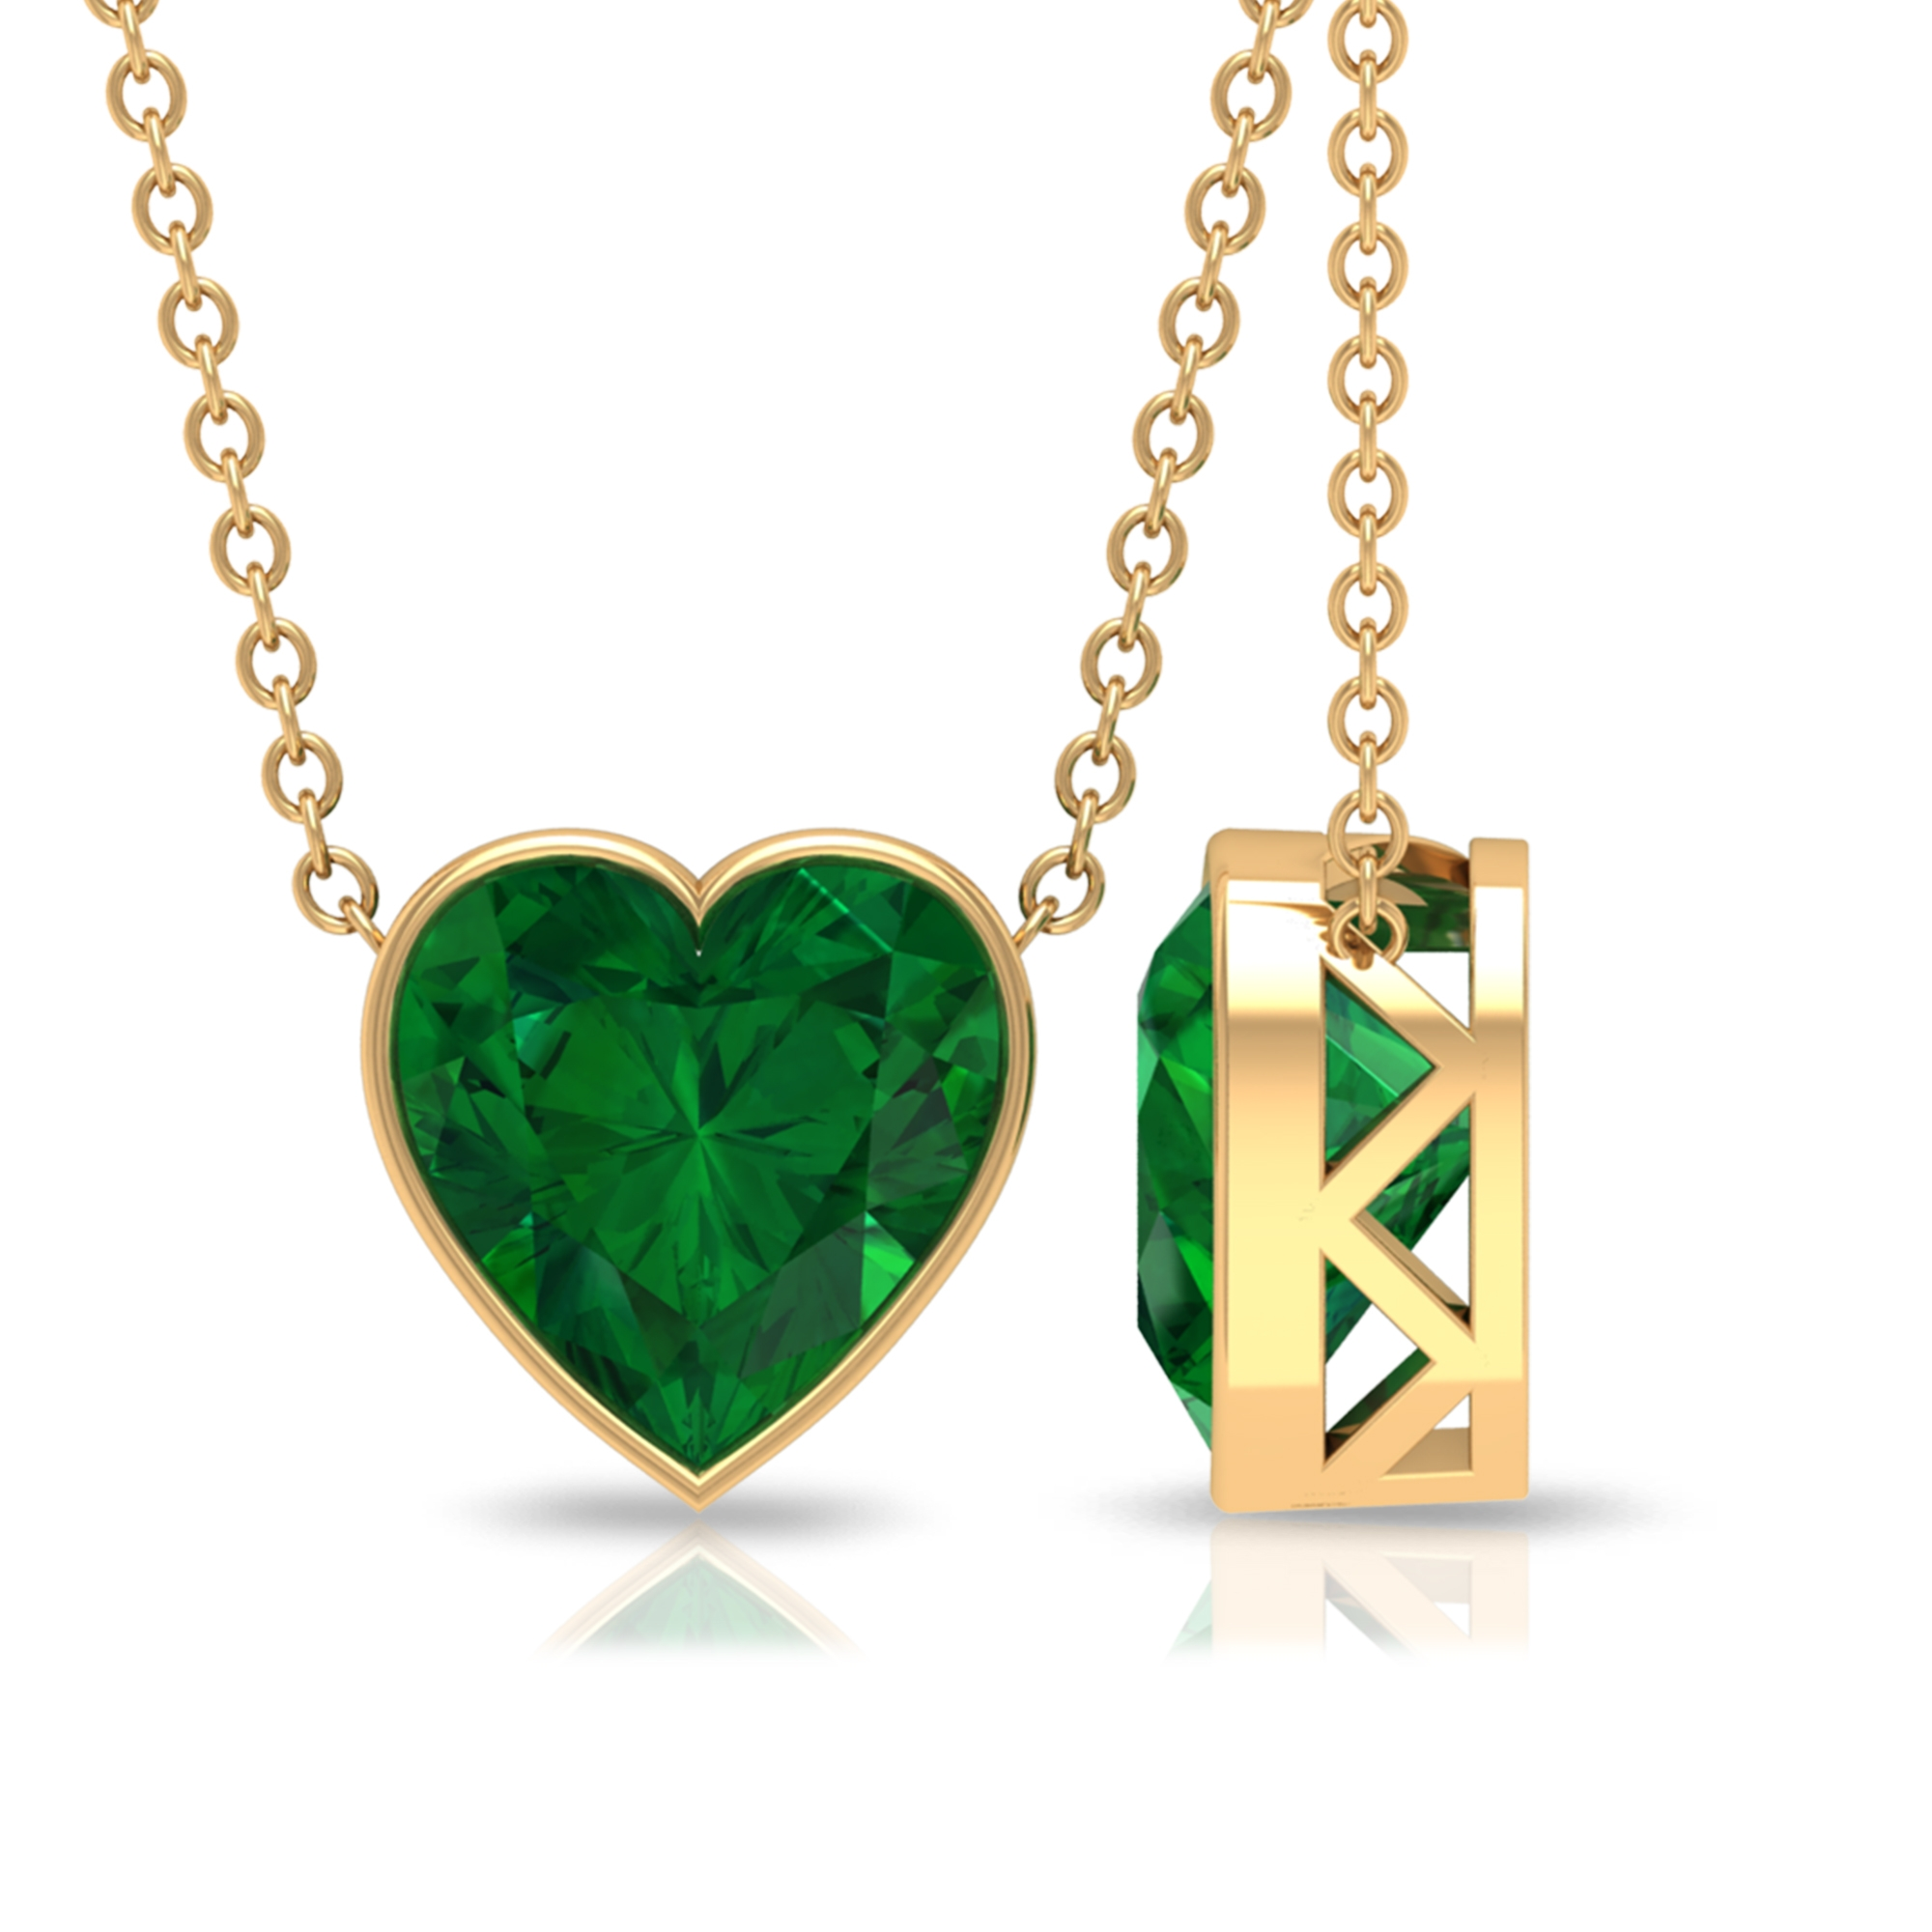 8 MM Heart Cut Emerald Solitaire Necklace in Bezel Setting